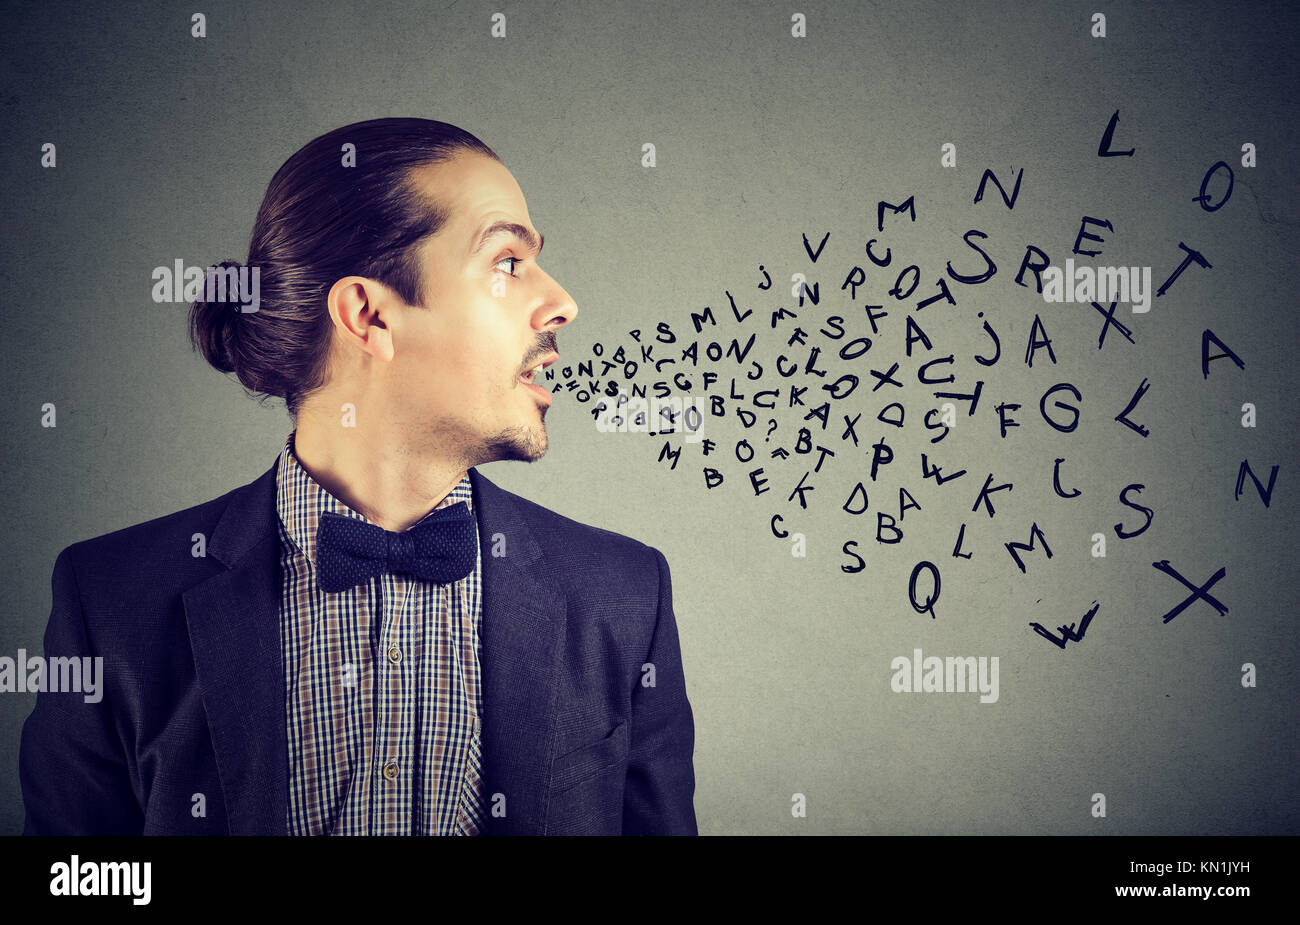 Man talking with alphabet letters coming out of his mouth. Communication, information, intelligence concept - Stock Image